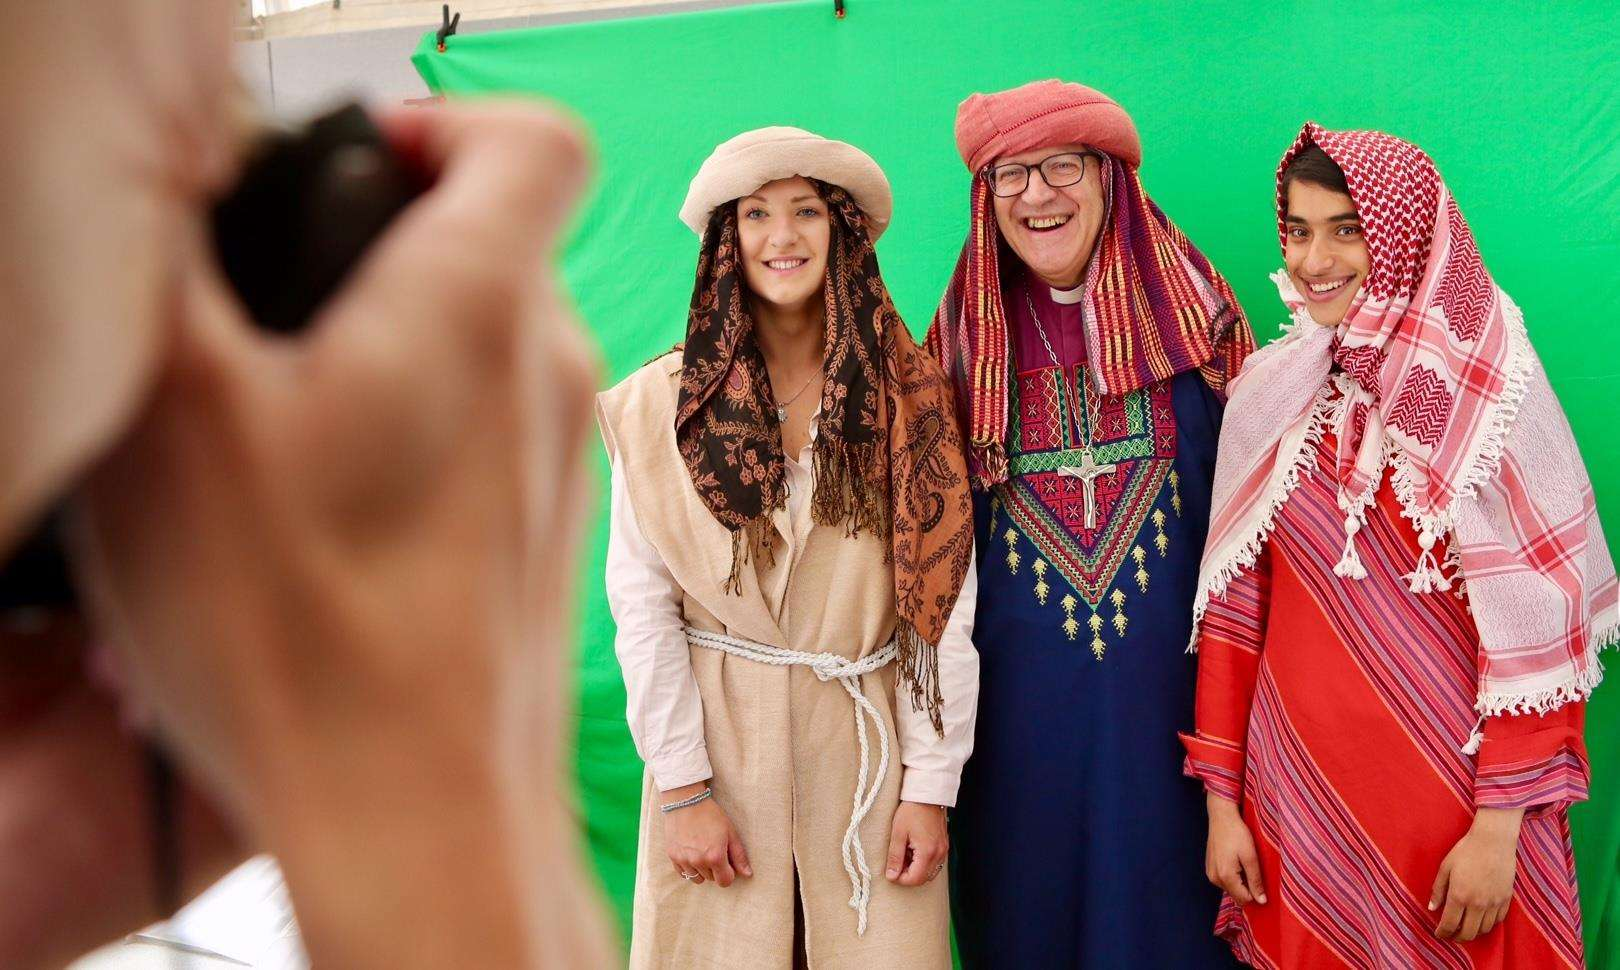 Bishop Martin Seeley at the Suffolk Show Church of England marquee with Amber Rudland, left, and Annika Mathews, right, robed up in the fun photo booth area. (2285214)